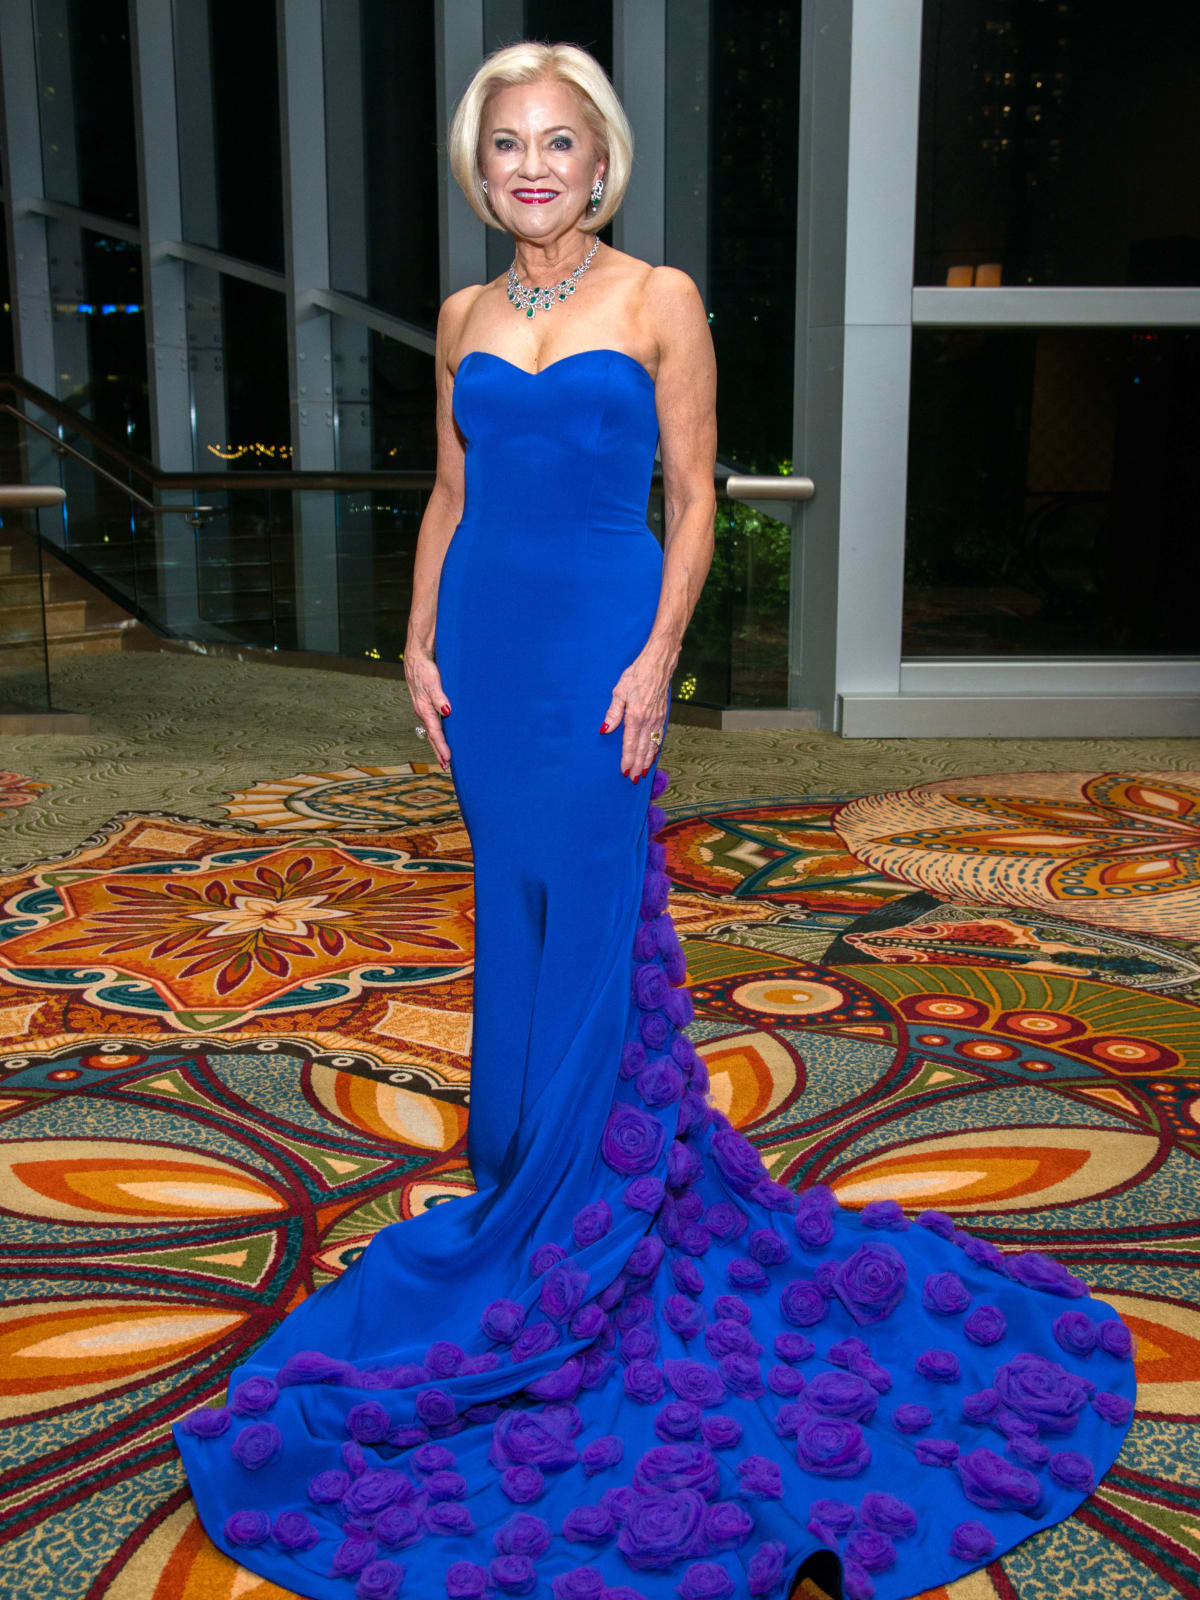 Houston, Women of Distinction fashionable gowns, Feb 2017, Jo Furr